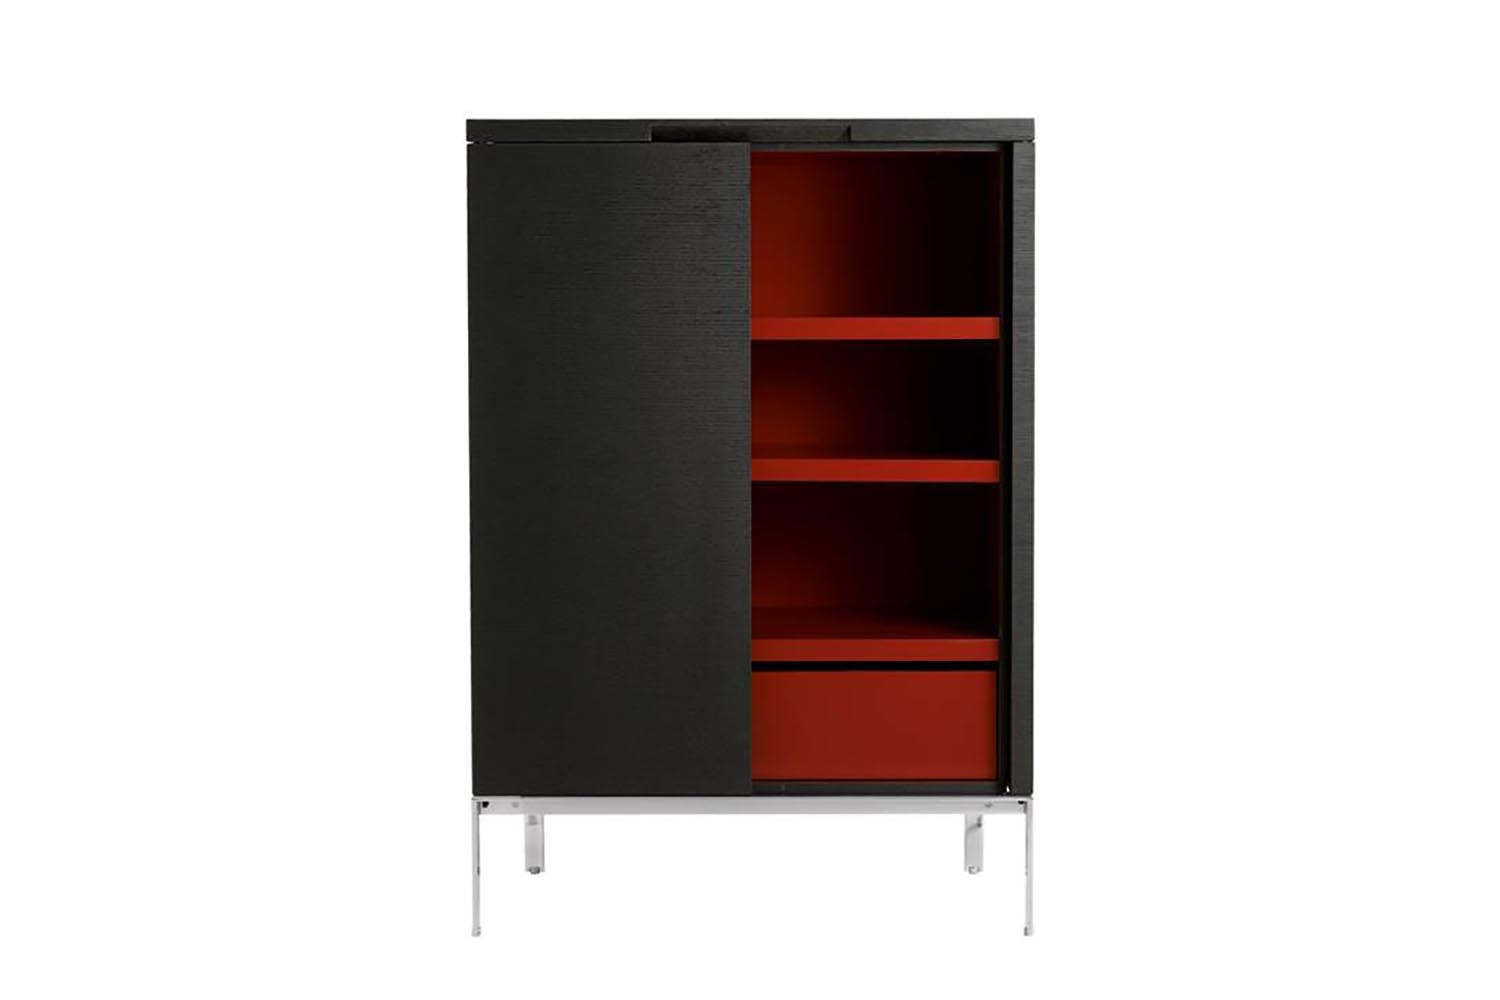 Mida 2010 Storage Unit by Antonio Citterio for Maxalto